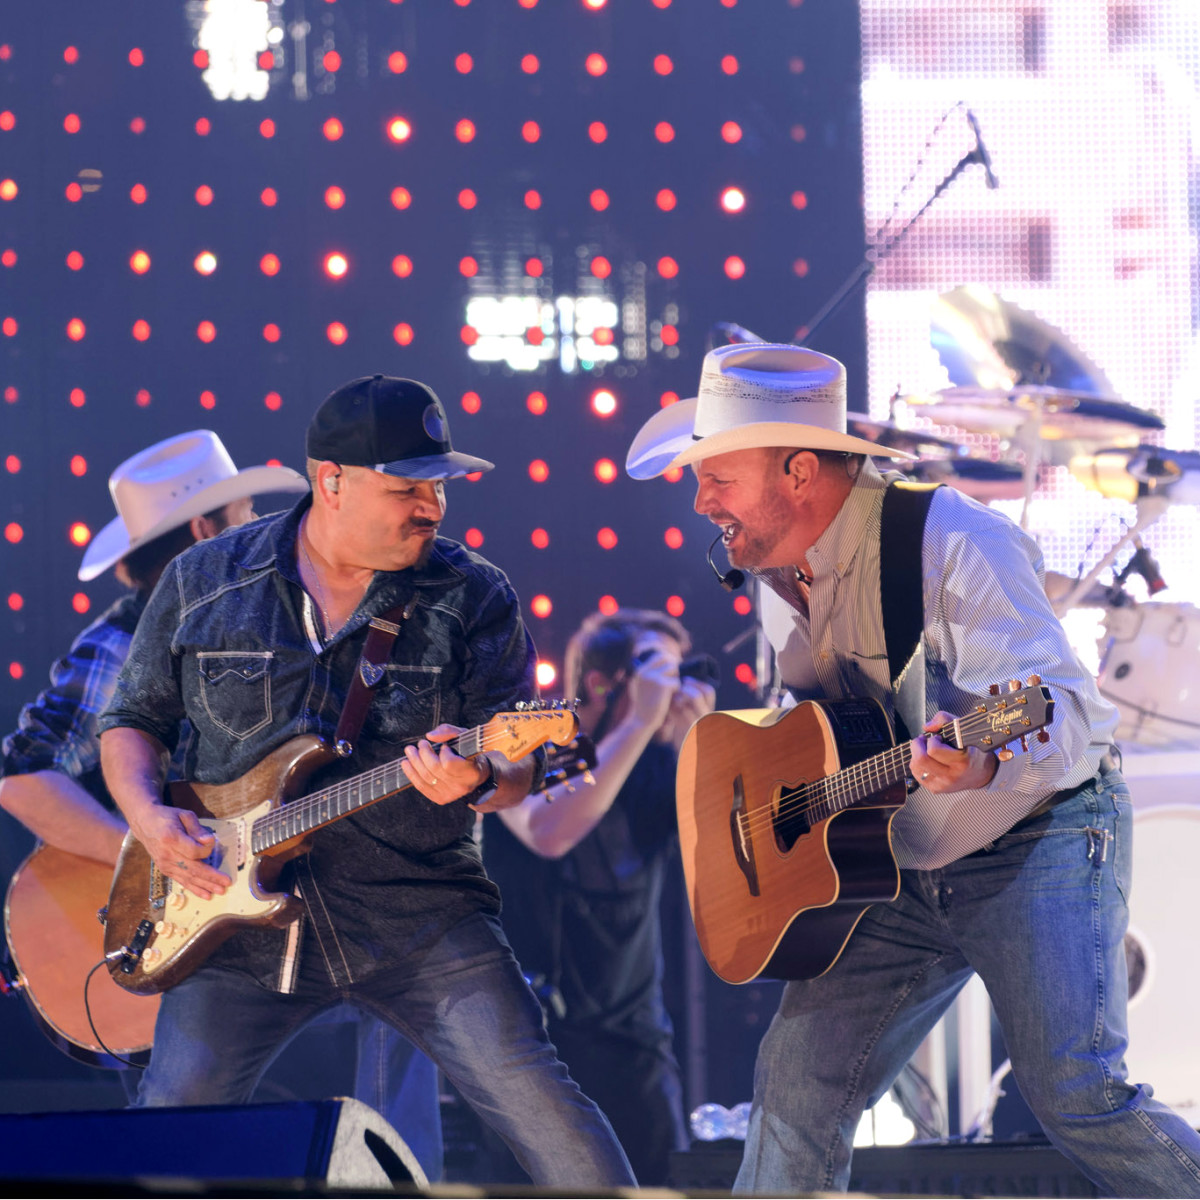 Garth Brooks opening night RodeoHouston with guitarist